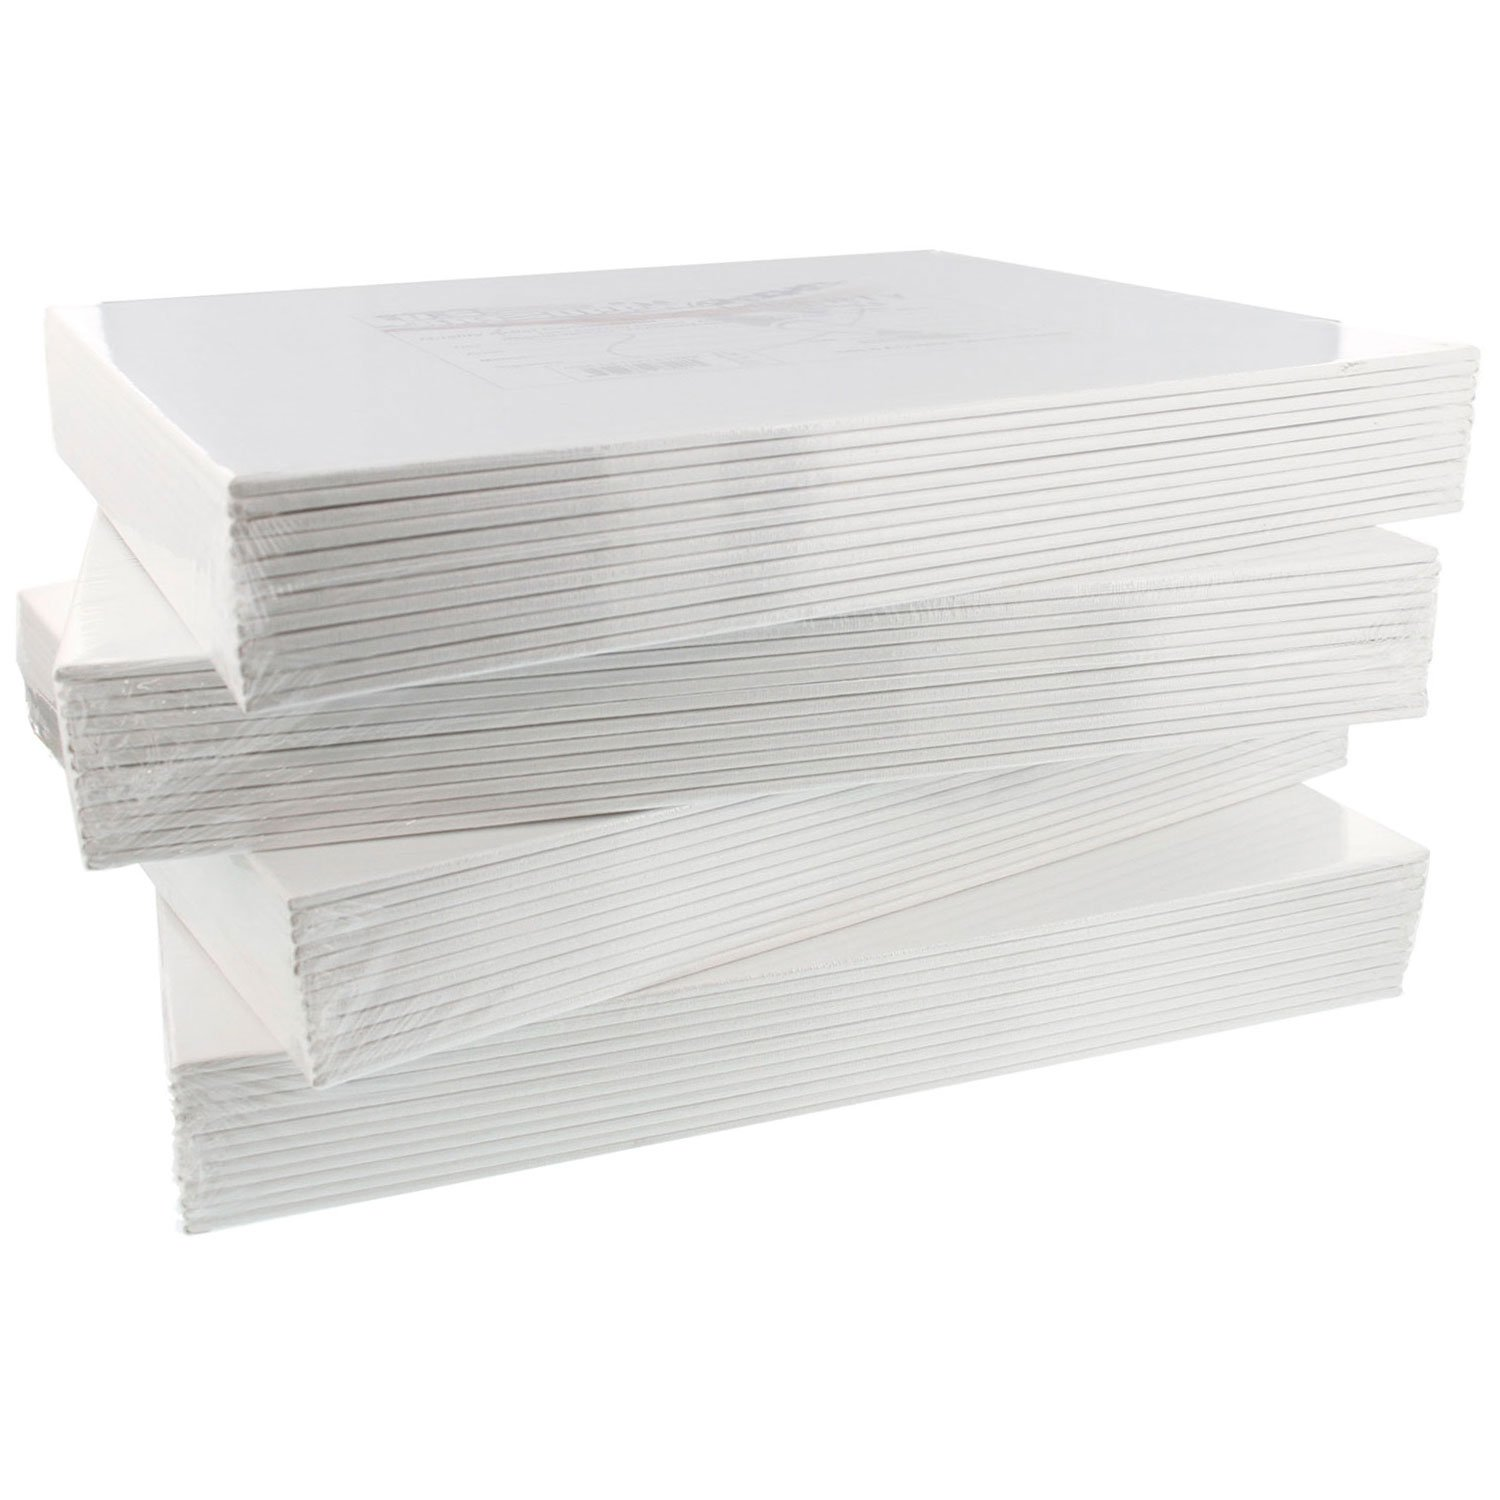 US Art Supply 11 X 14 inch Professional Artist Quality Acid Free Canvas Panels 48-Pack (4 Full Cases of 12 Single Canvas Panels) by US Art Supply (Image #4)